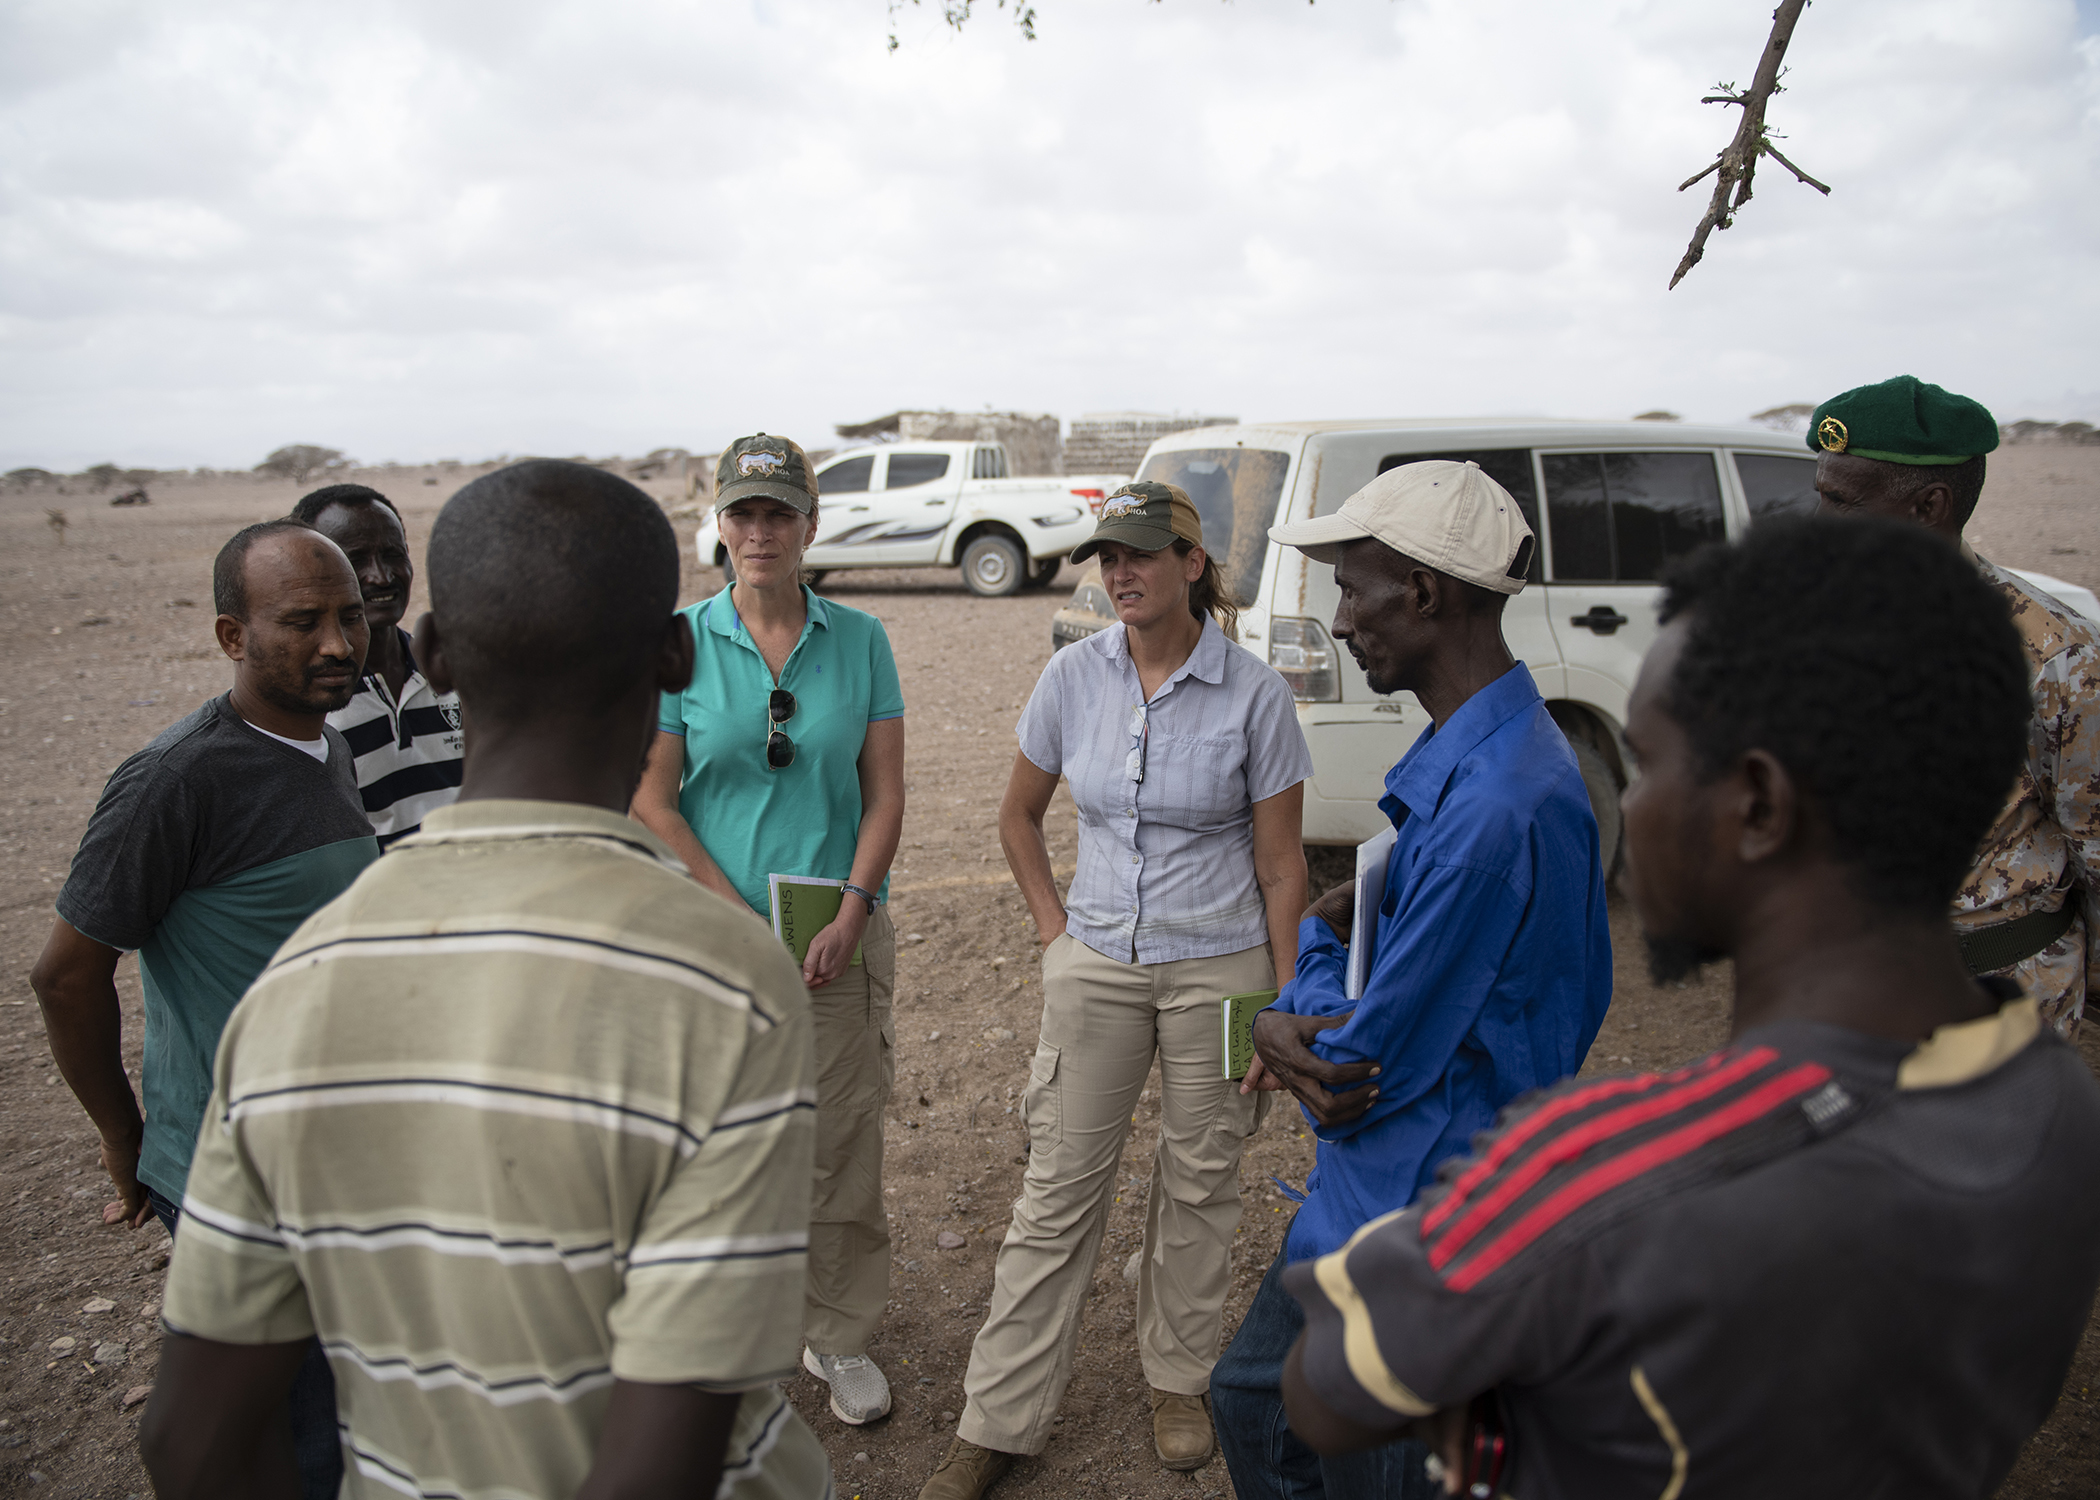 U.S. Soldiers with the 403rd Civil Affairs Battalion, Functional Specialty Cell's Veterinary Team, assigned to Combined Joint Task Force-Horn of Africa, engaged local pastoralists to promote better herd-health management and facilitate communication for further engagements during a veterinary civic action project (VETCAP) in Oulma, Djibouti, on Feb. 14, 2019. The purpose of Civil Affairs VETCAPs is to build relationships with local community animal health workers and the Djiboutian Ministry of Livestock via animal health surveillance, and to improve knowledge, skills, livestock medicine and best practices. (U.S. Air Force photo by Tech. Sgt. Shawn Nickel)